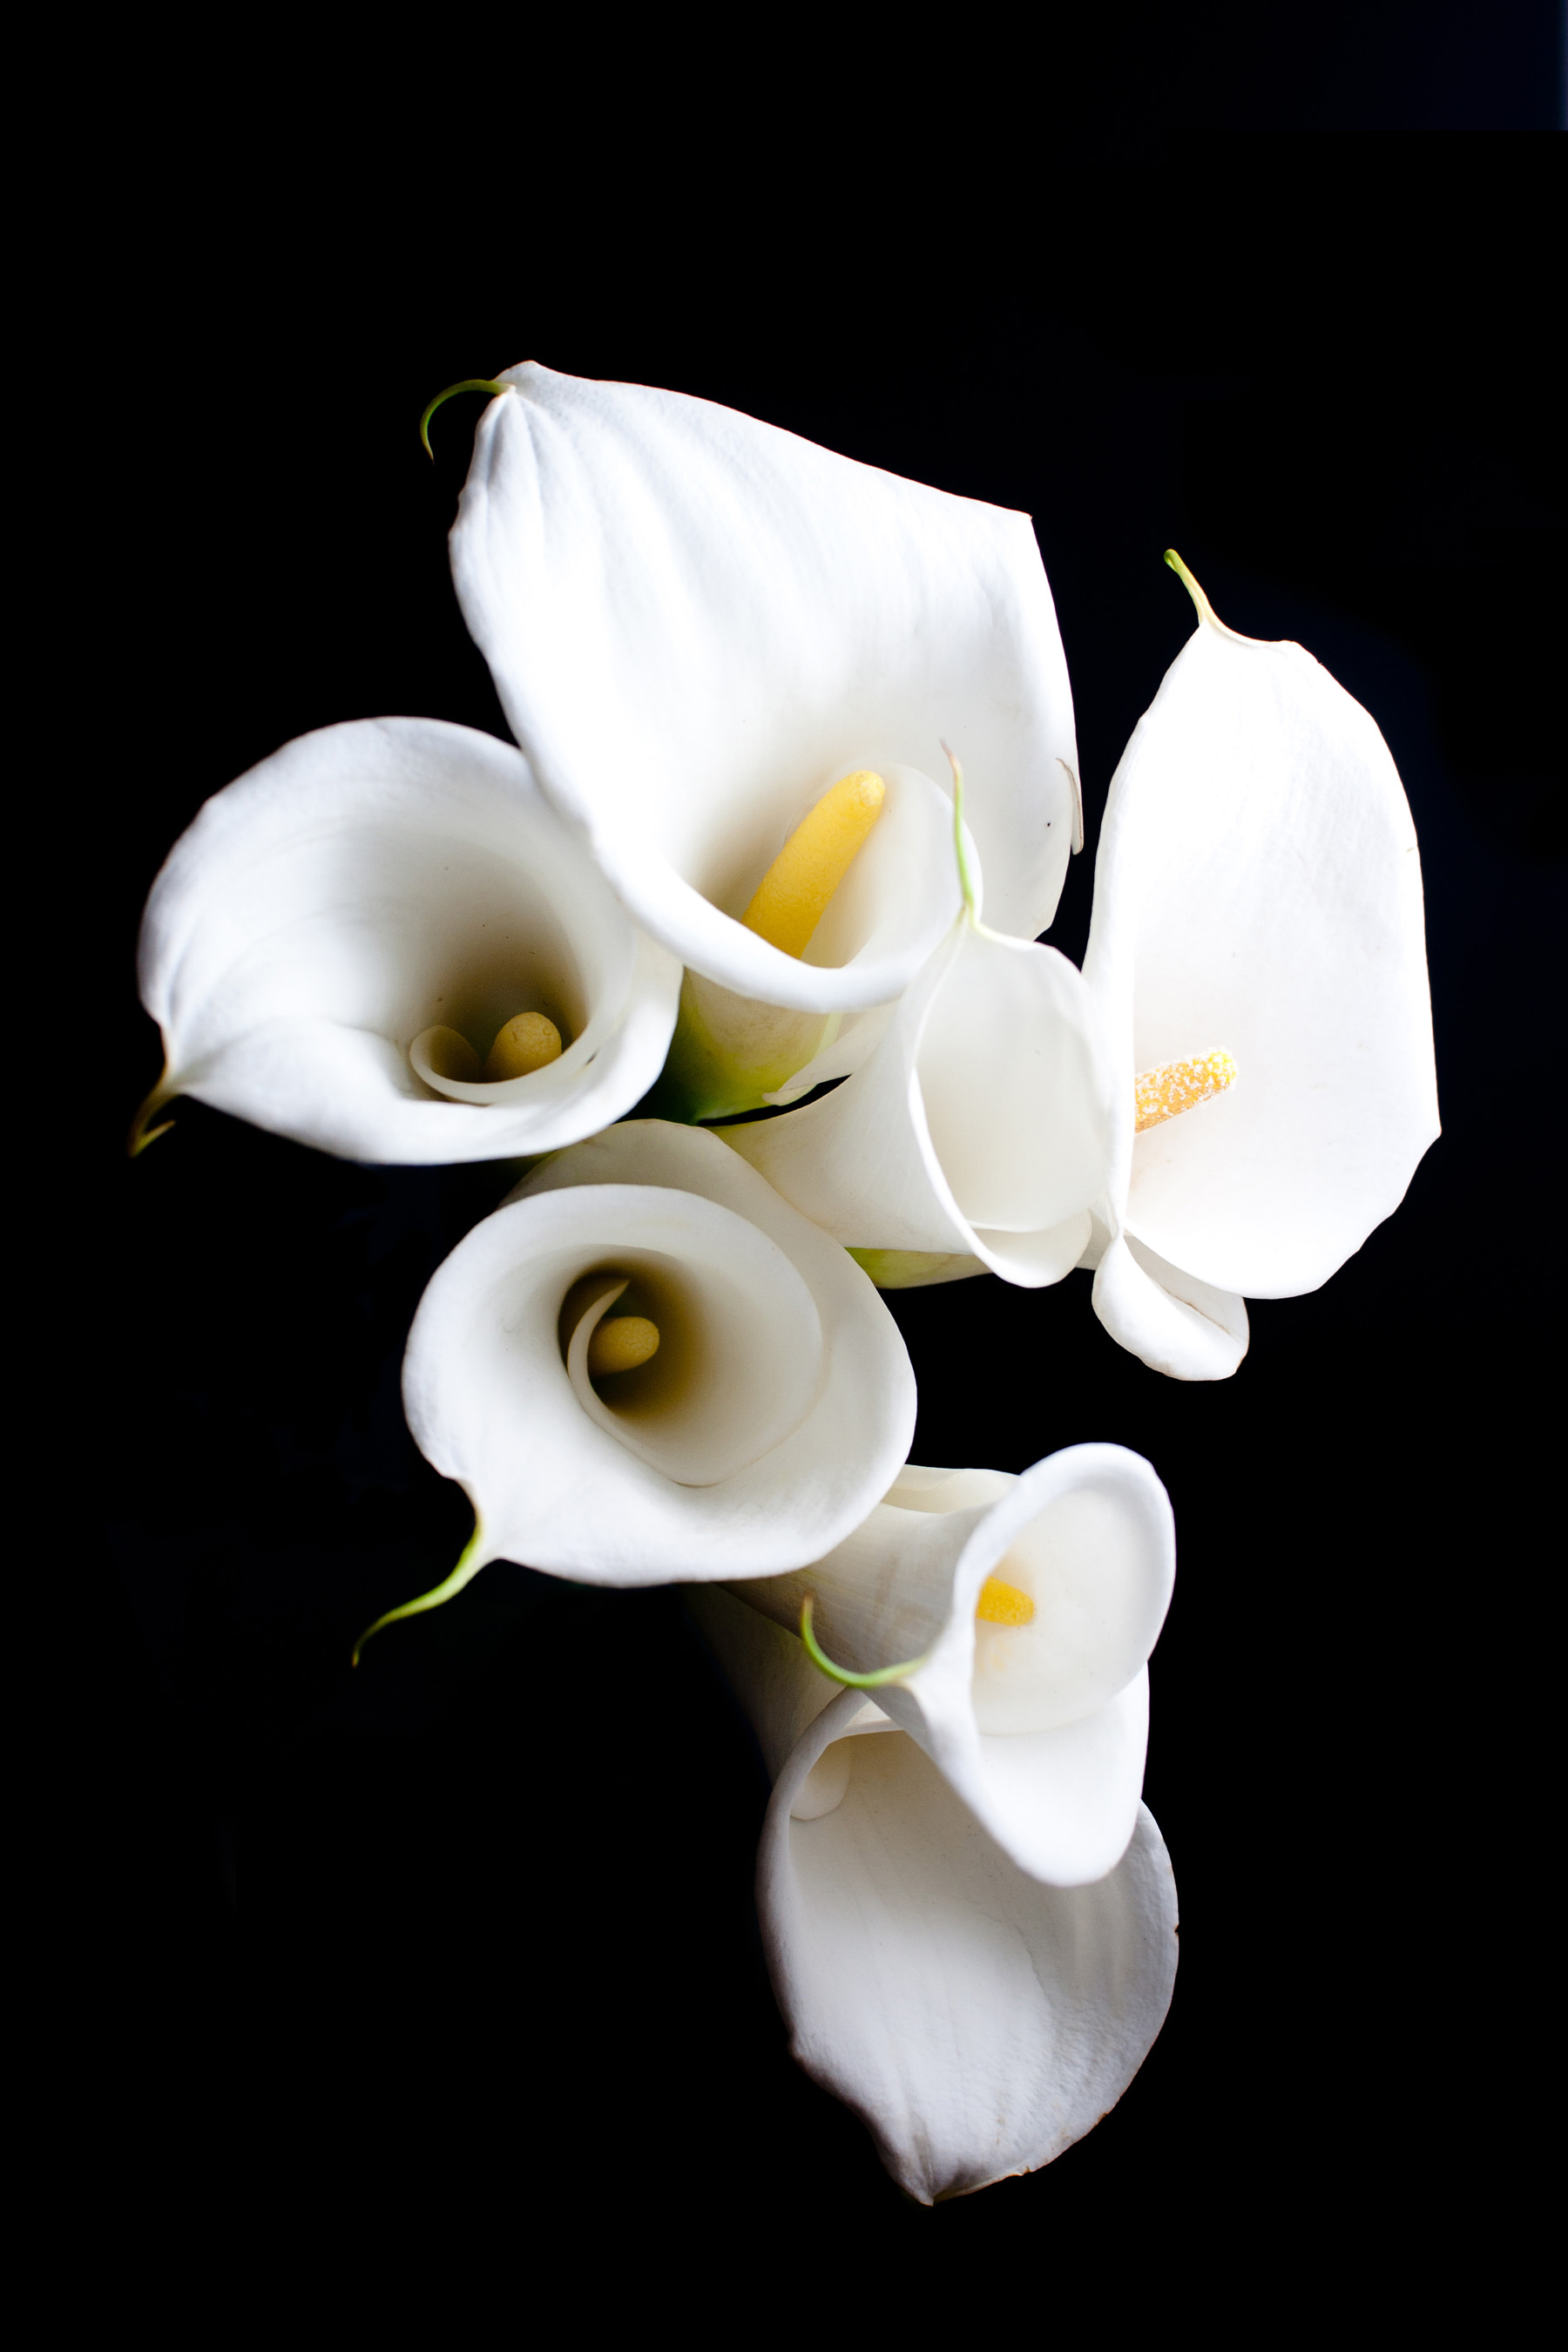 White calla lily flower close up 52016 flowers photo flowers white calla lily flower close up 52016 izmirmasajfo